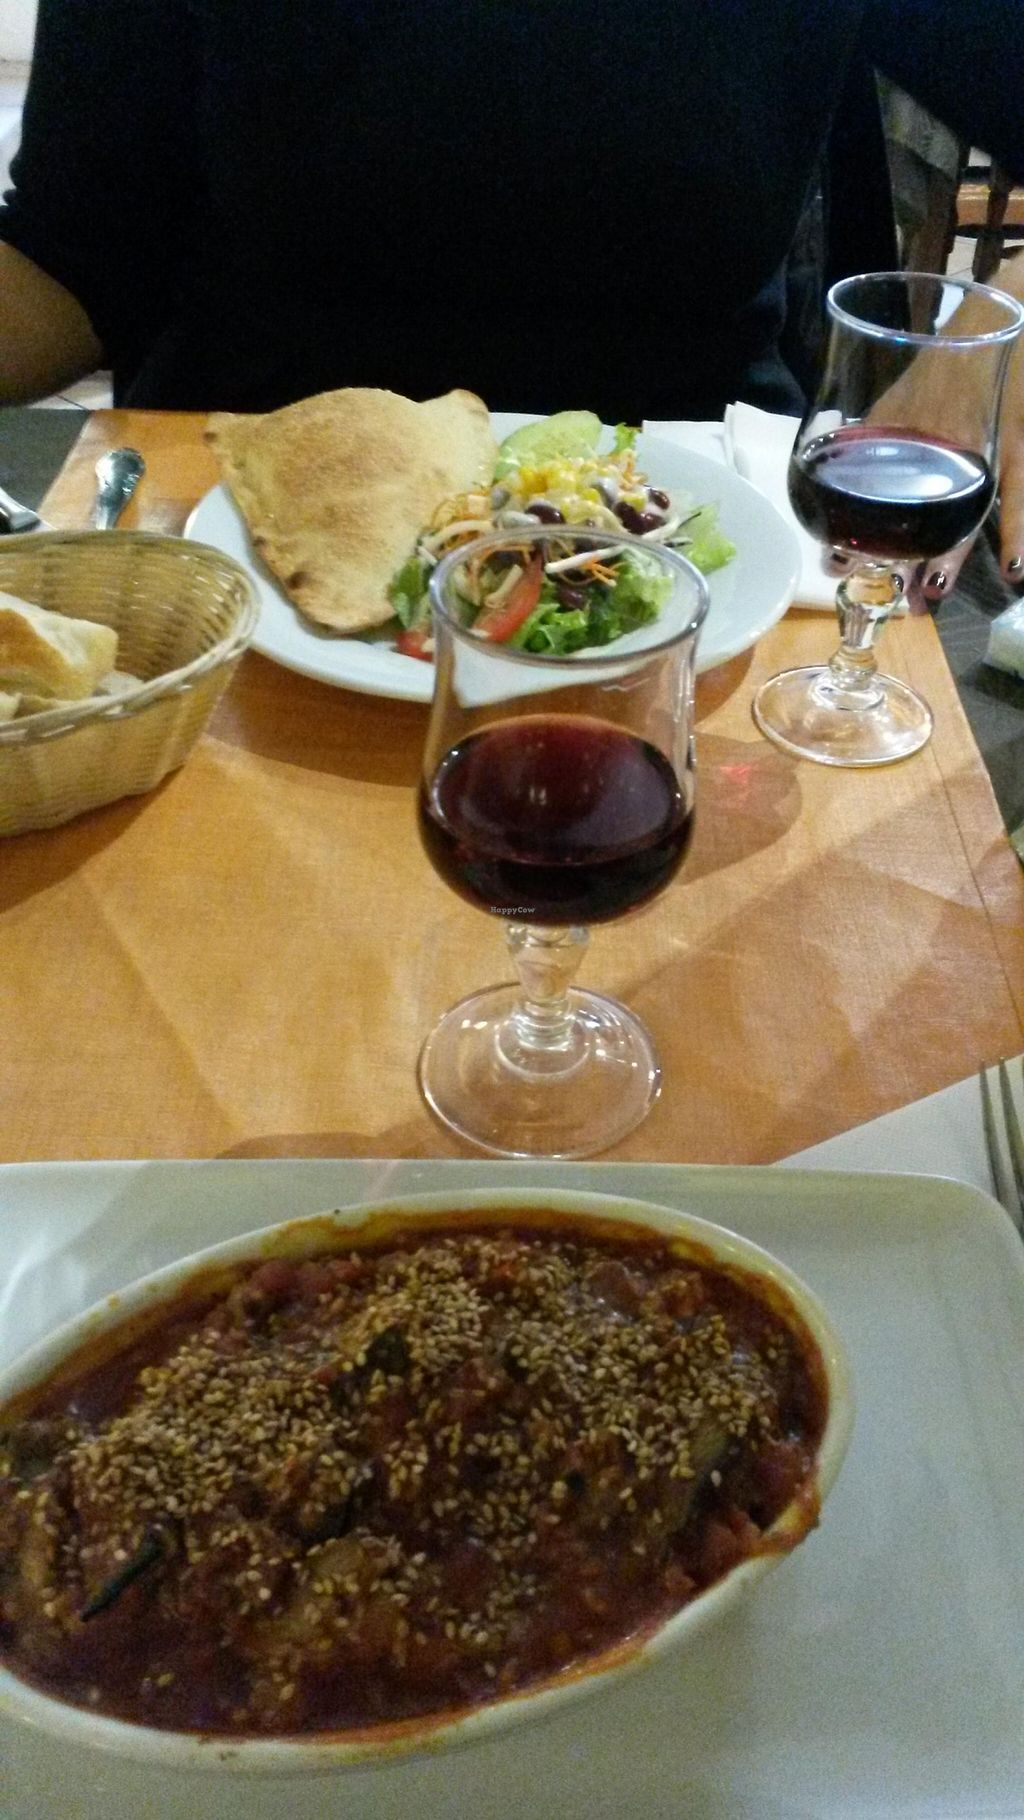 """Photo of Au Potiron  by <a href=""""/members/profile/Marine%20Phoenix"""">Marine Phoenix</a> <br/>Gratin vegan (aubergines, proteines de soja...) top!  <br/> October 2, 2015  - <a href='/contact/abuse/image/6401/119807'>Report</a>"""